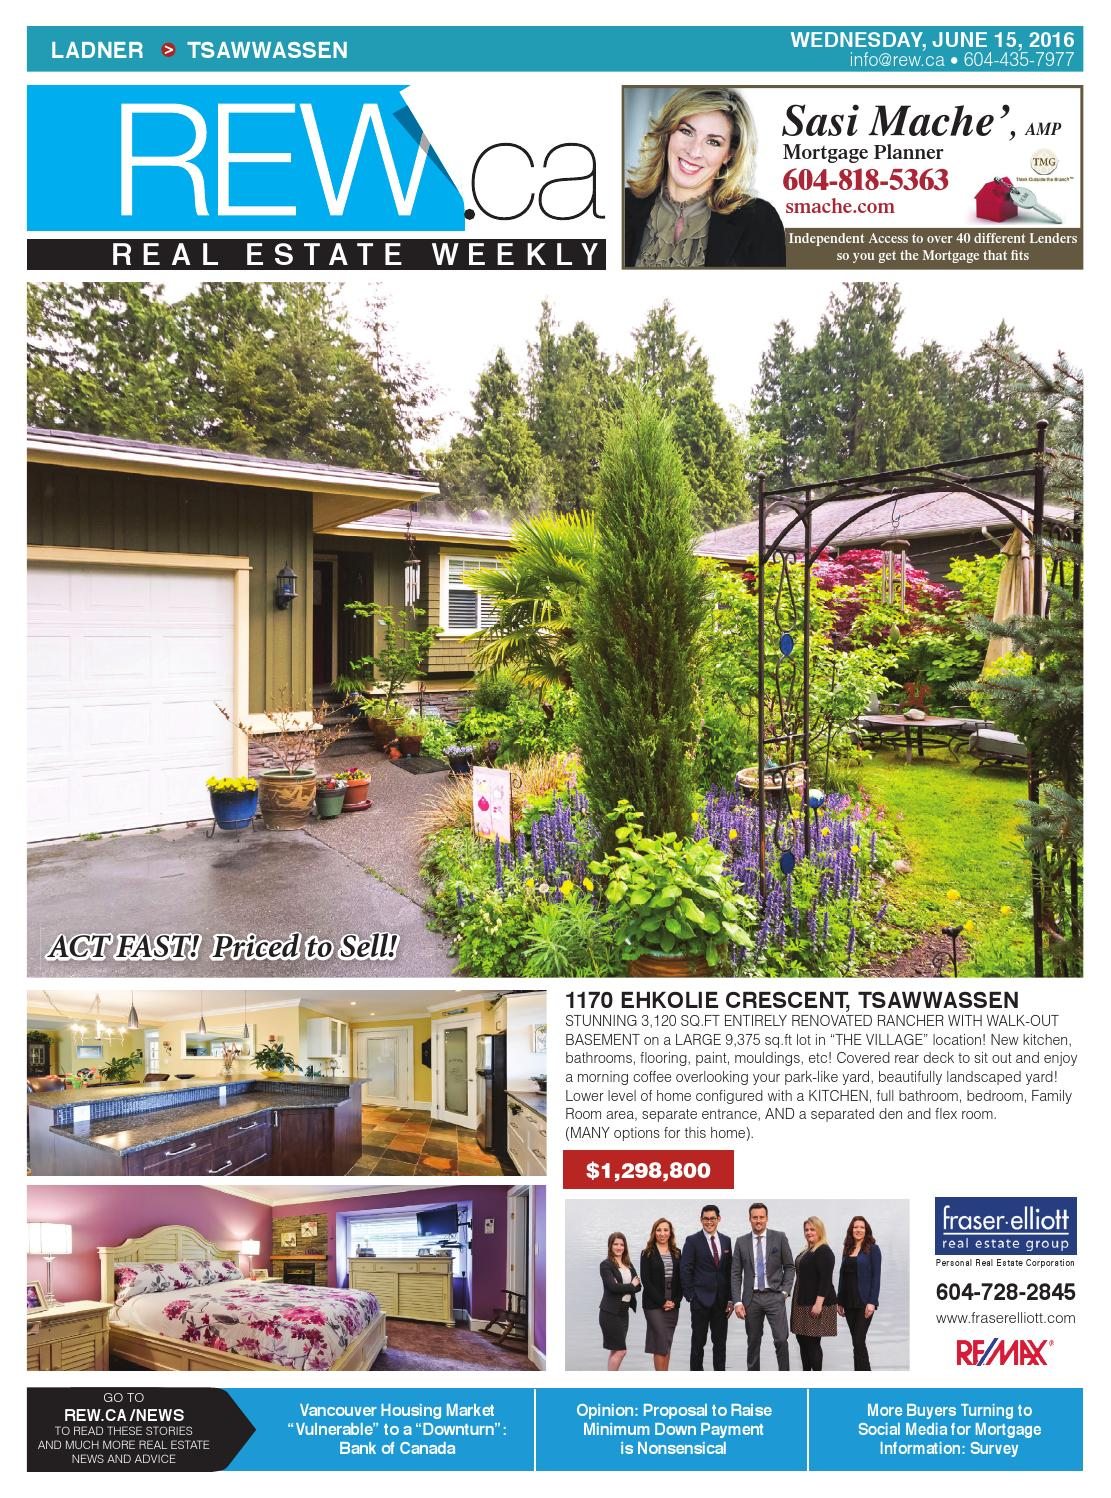 realtor and interior designer debbie evans realtor interior design consultant remax west LADNER - TSAWWASSEN Jun 15, 2016 Real Estate Weekly by Real Estate Weekly -  issuu